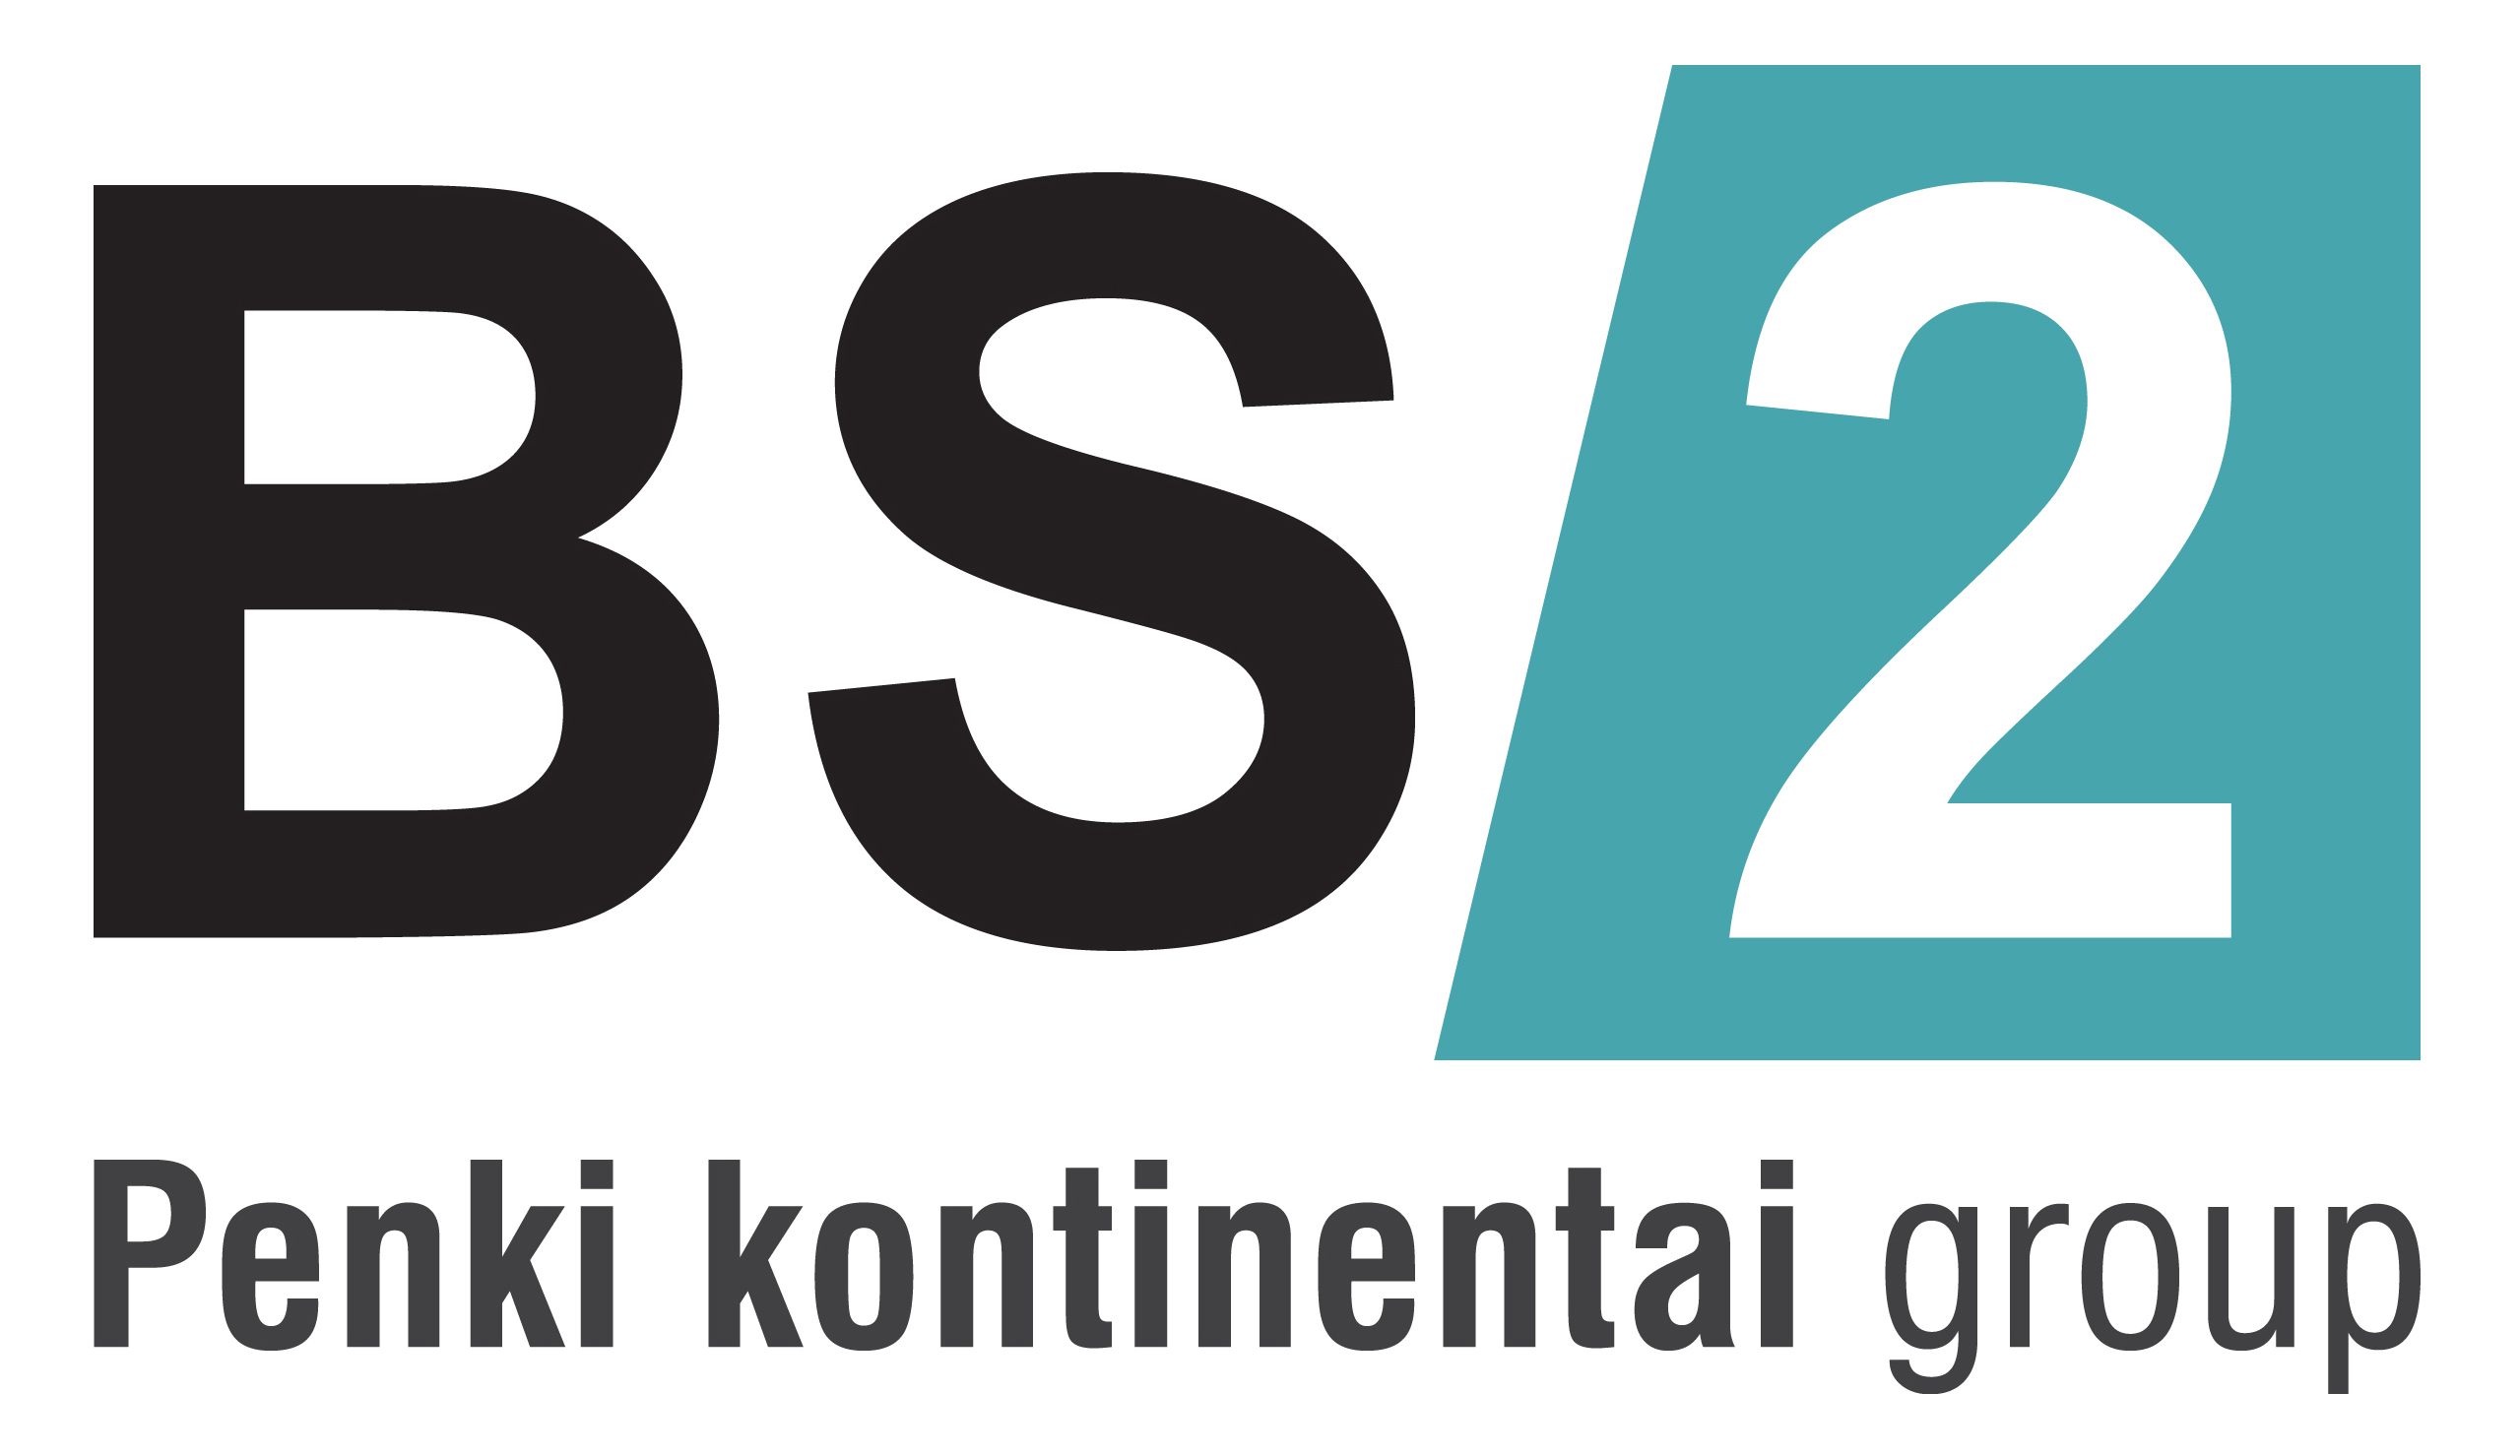 BS/2 is entering new middle east markets